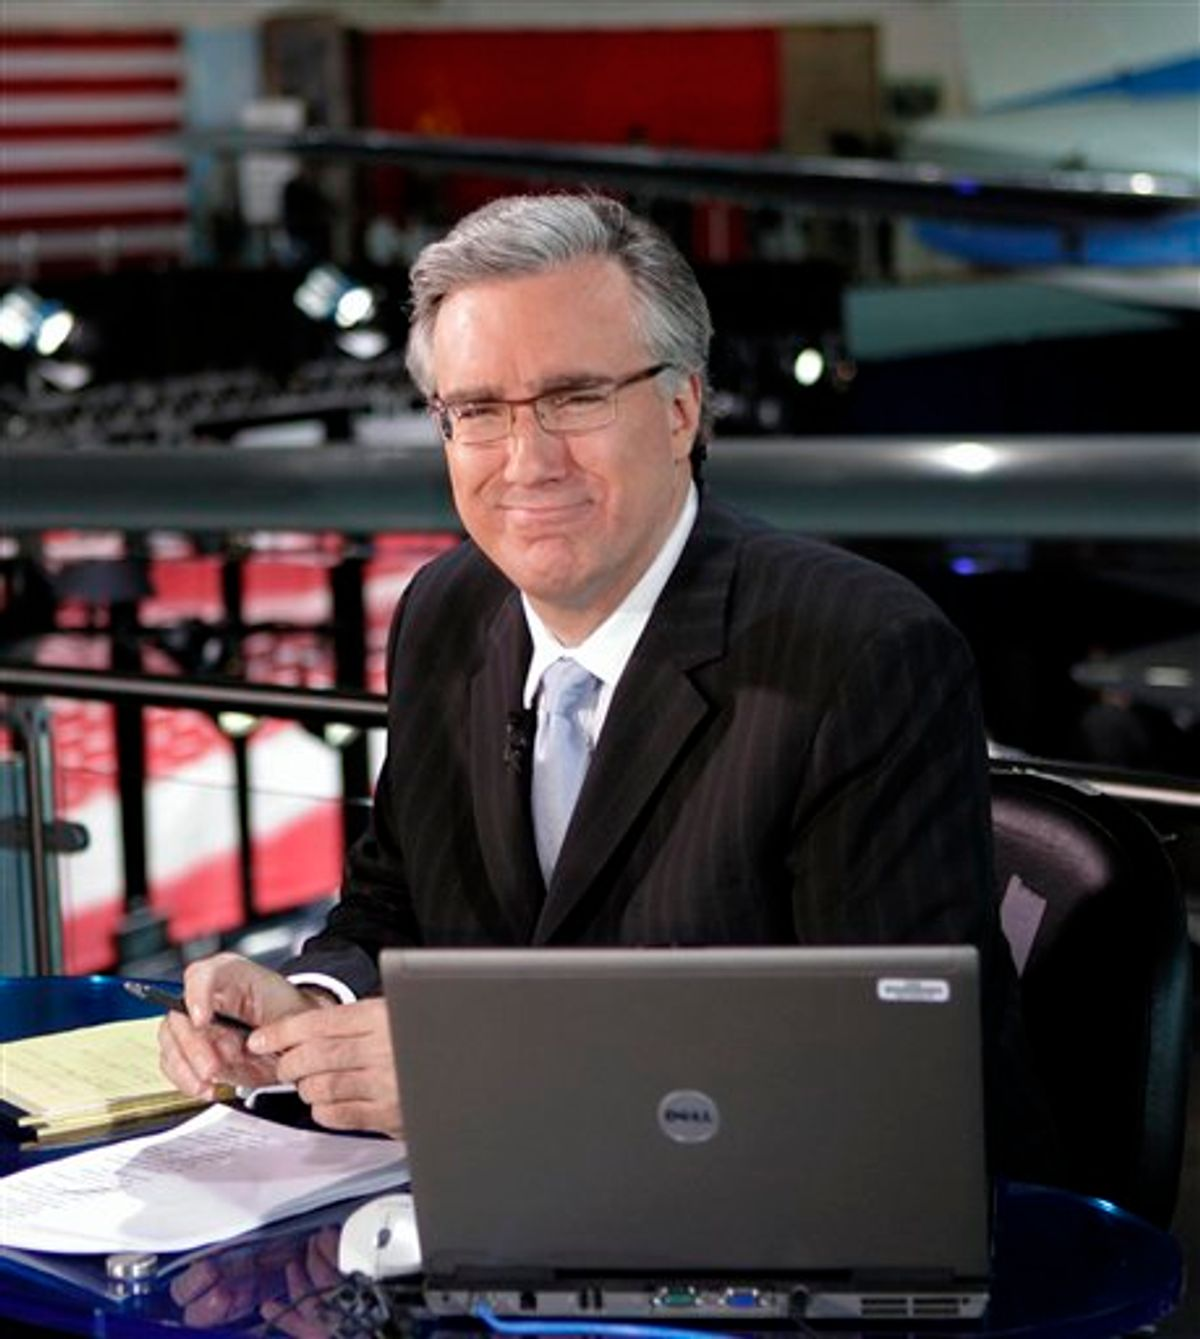 """FILE - In this May 3, 2007 file photo, Keith Olbermann of MSNBC poses at the Ronald Reagan Library in Simi Valley, Calif. Keith Olbermann is leaving MSNBC and has announced that Friday's """"Countdown"""" show will be his last.  MSNBC issued a statement Friday, Jan. 21, 2011, that it had ended its contract with the controversial host, with no further explanation. (AP Photo/Mark J. Terrill, File) (AP)"""